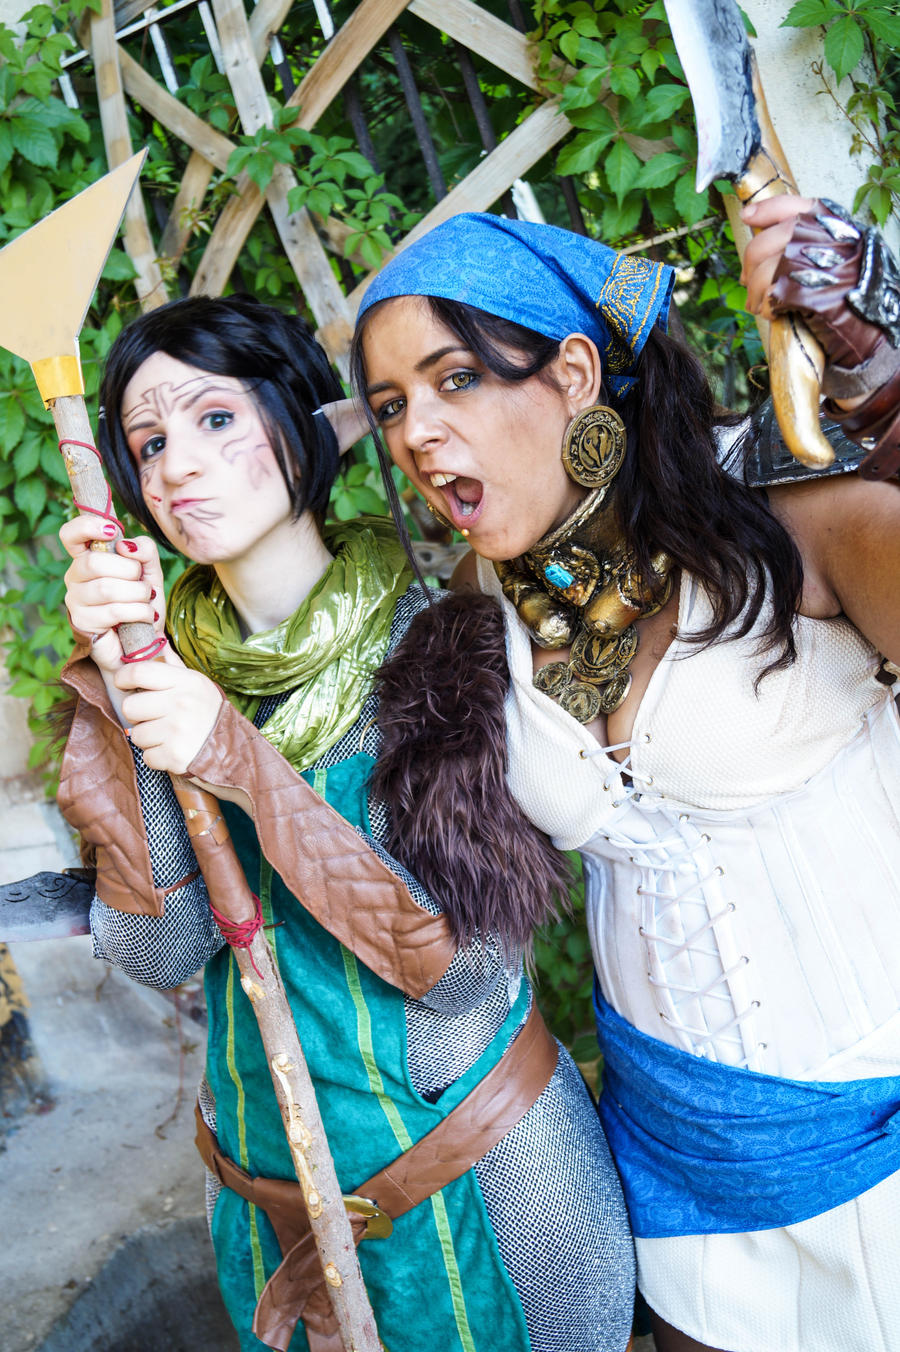 Isabela and Merrill by wilbur-kyriu